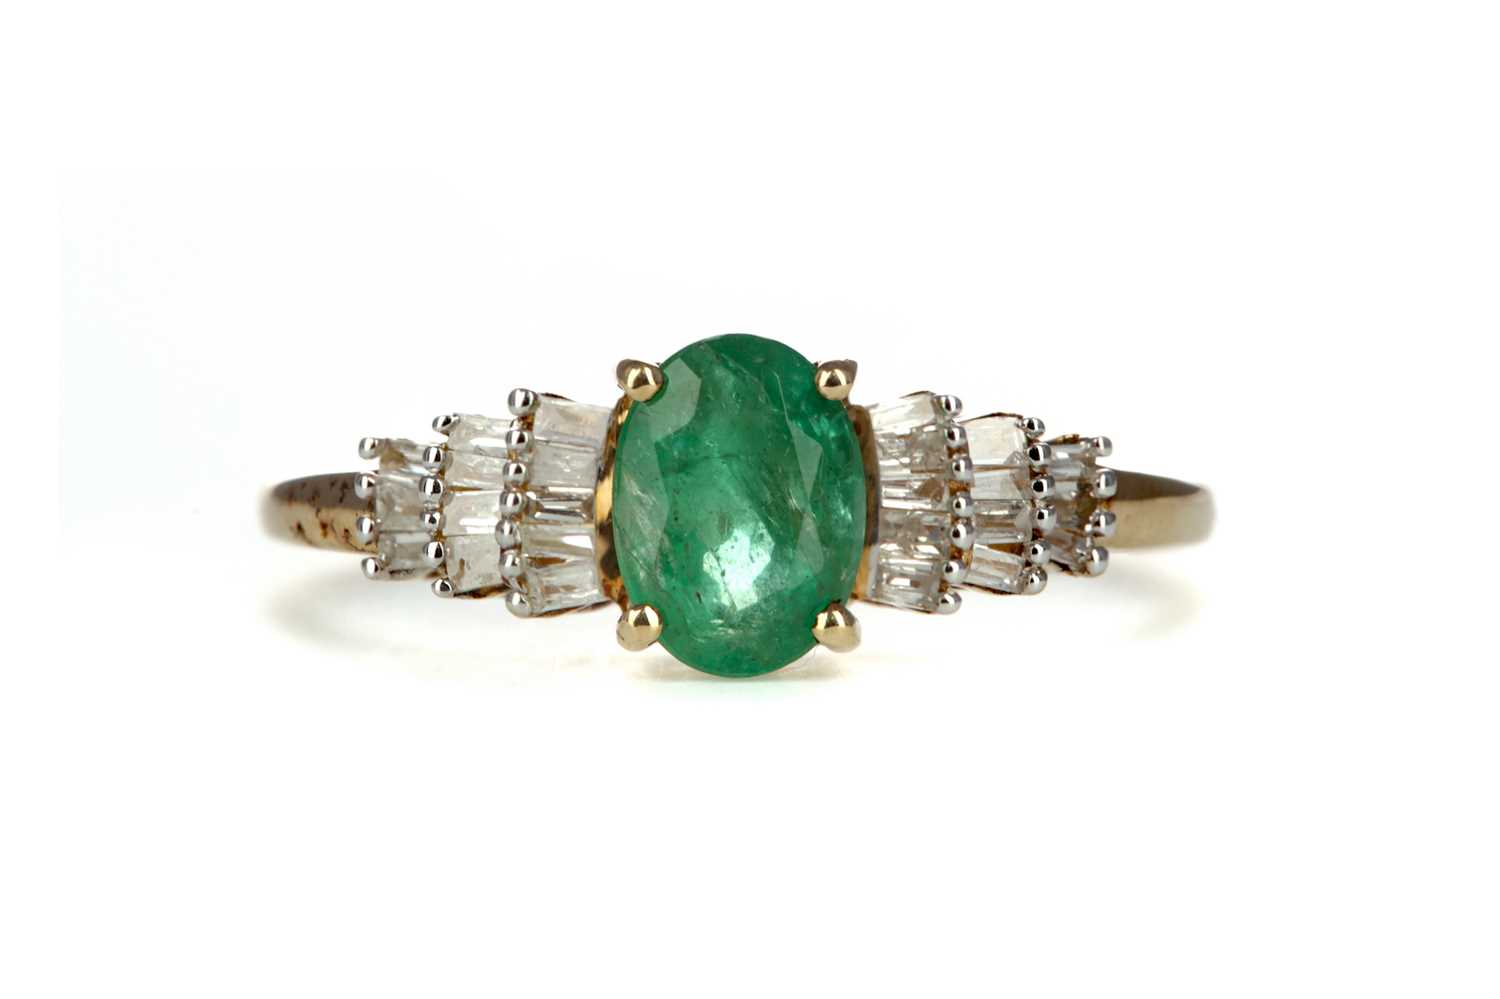 Lot 335 - AN EMERALD AND DIAMOND RING